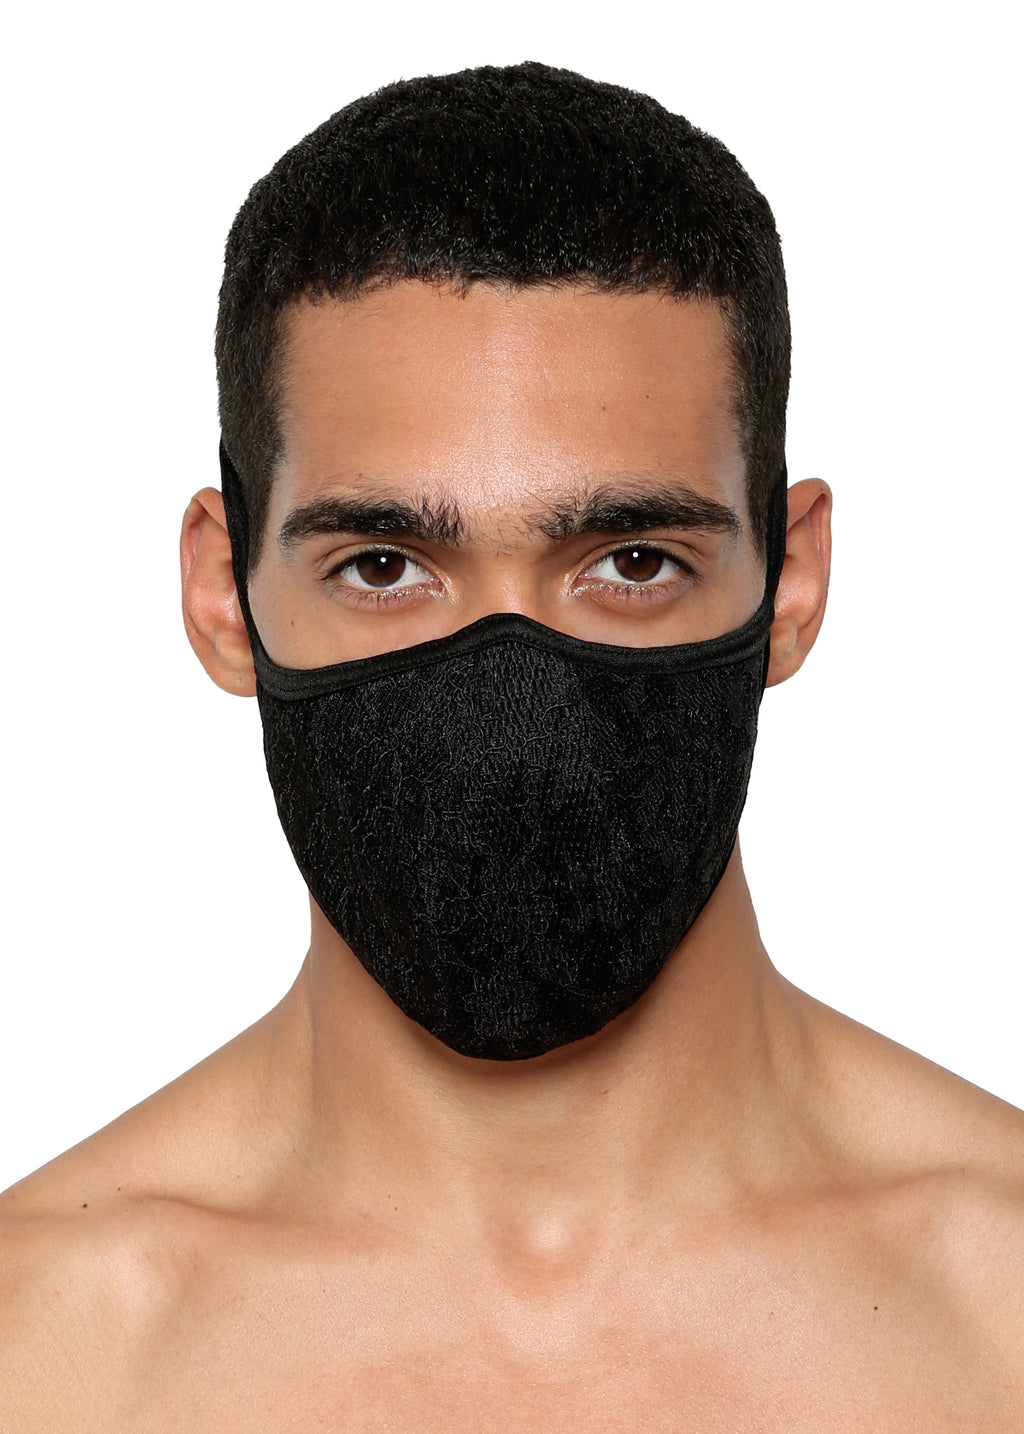 FACE MASK in NEOPRENE LACE - MENAGERIE Intimates MENS Lingerie